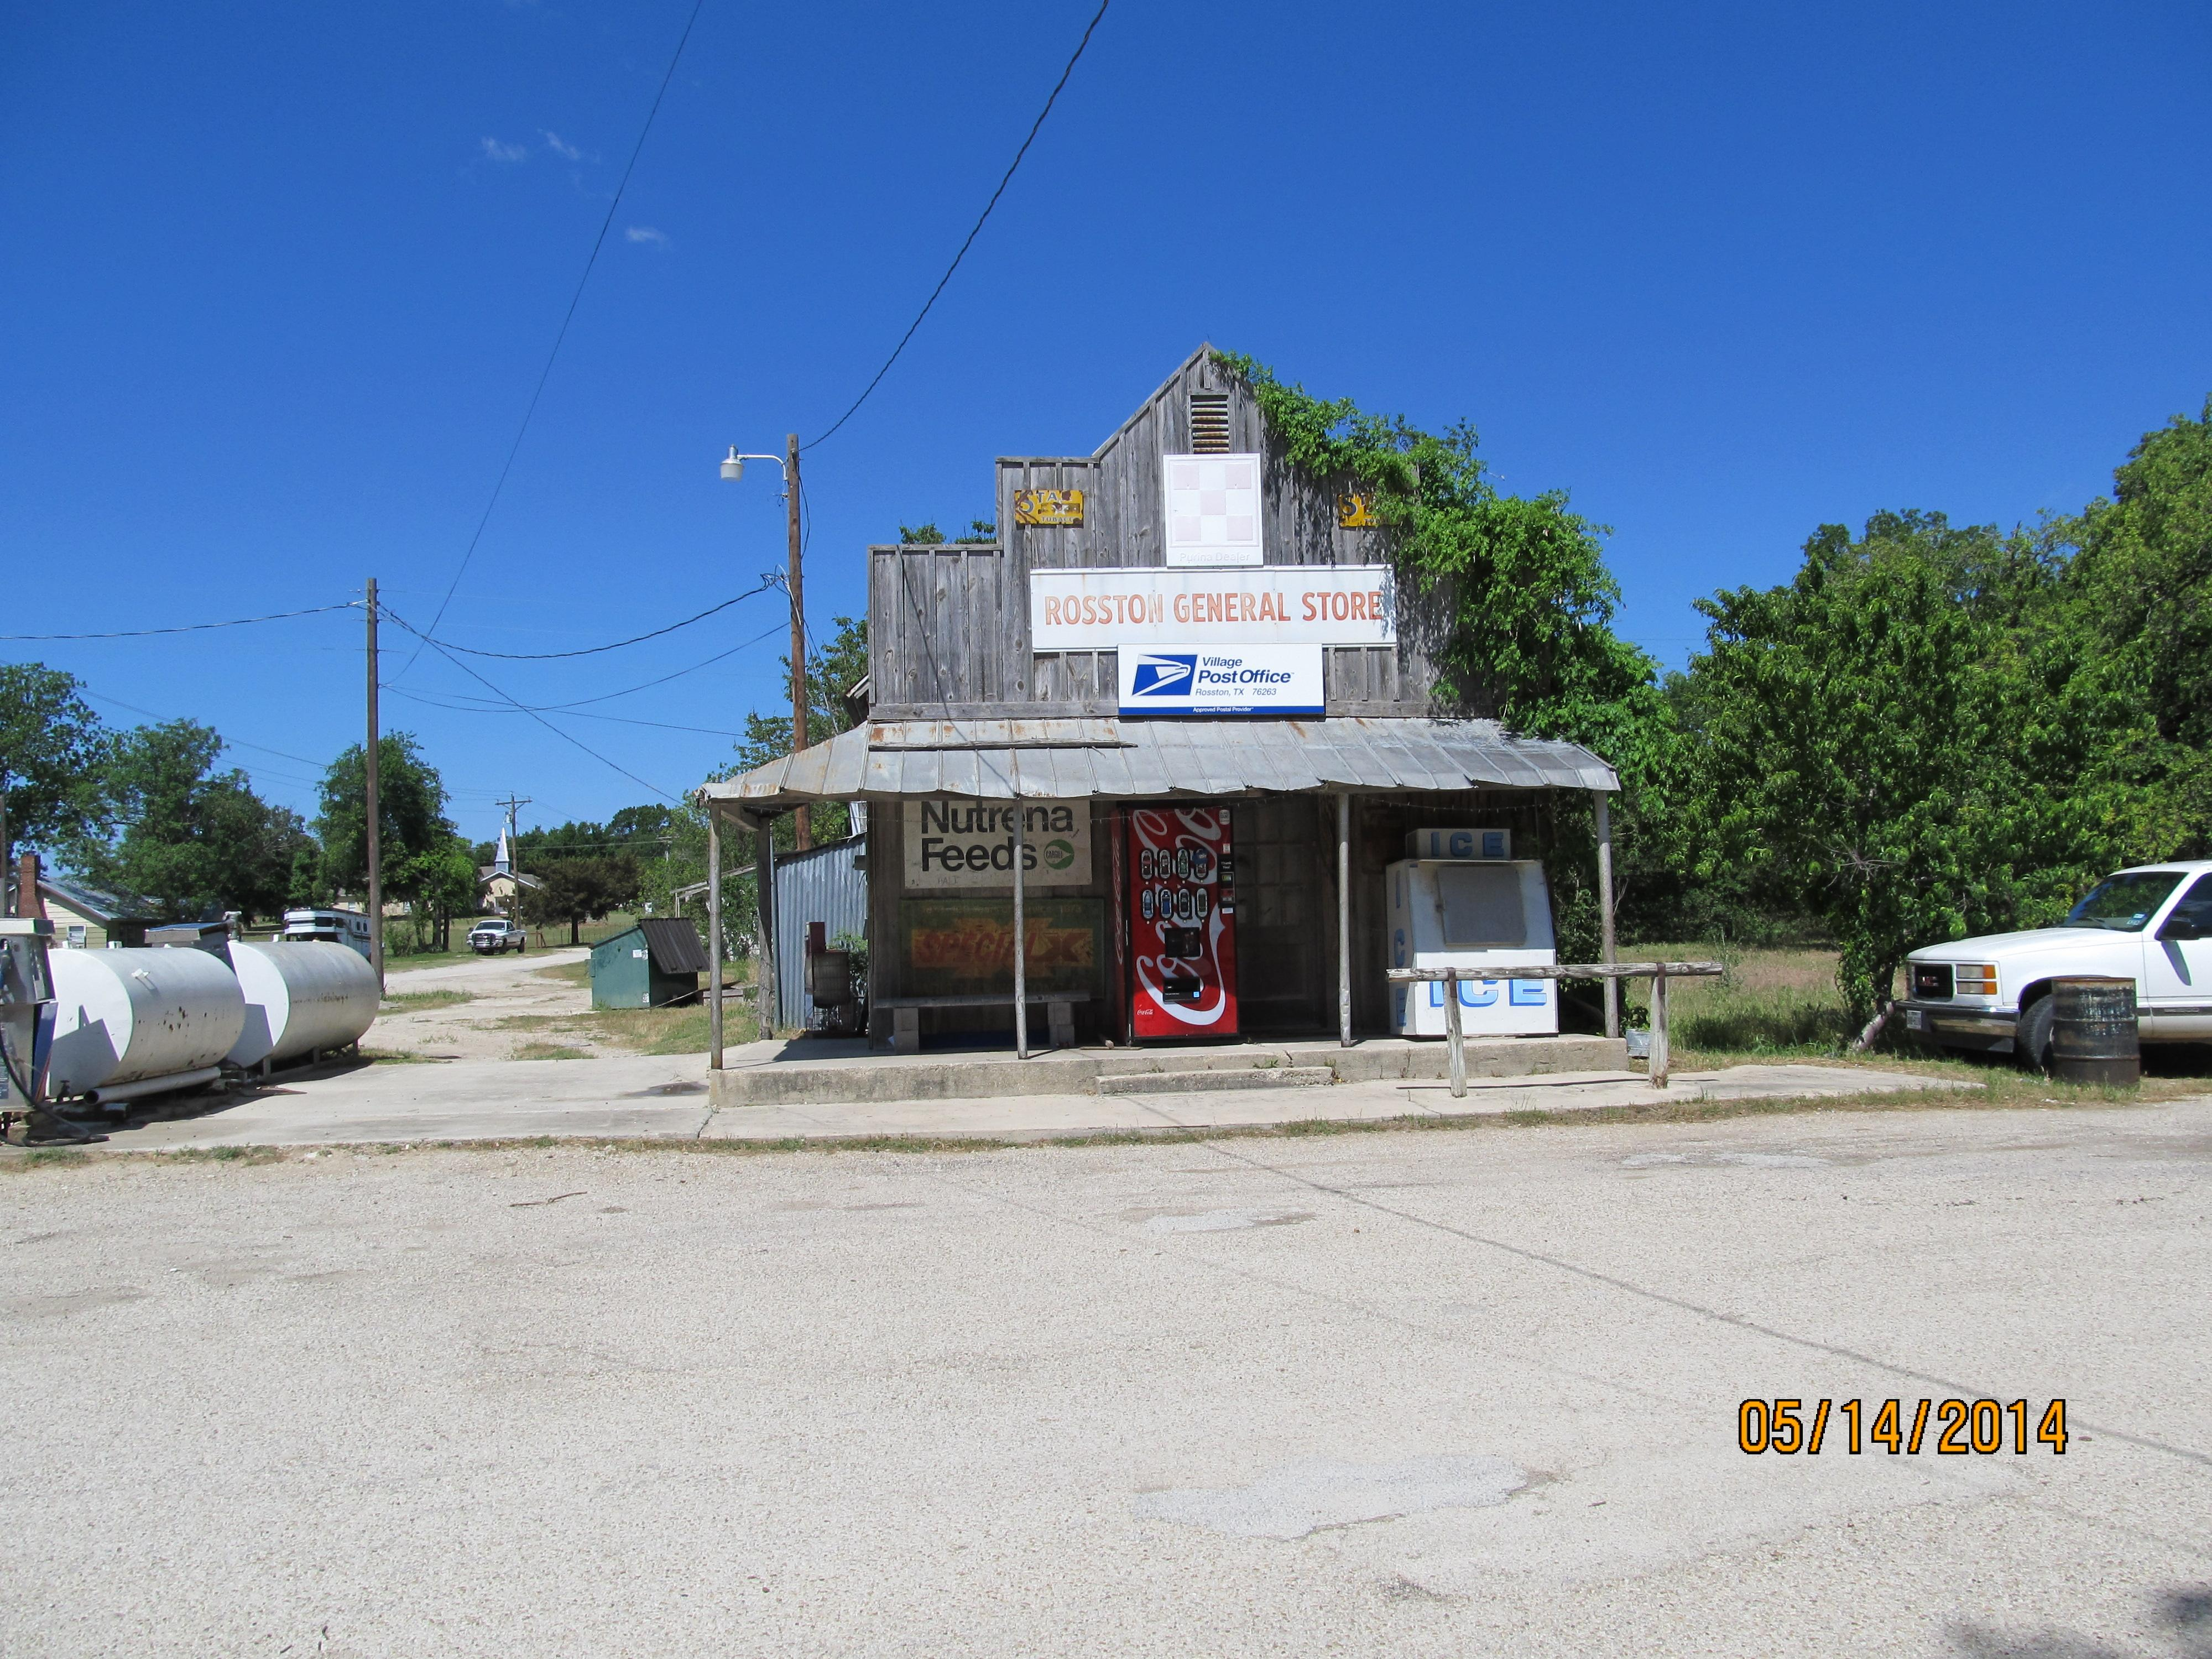 ROSSTON GENERAL STORE